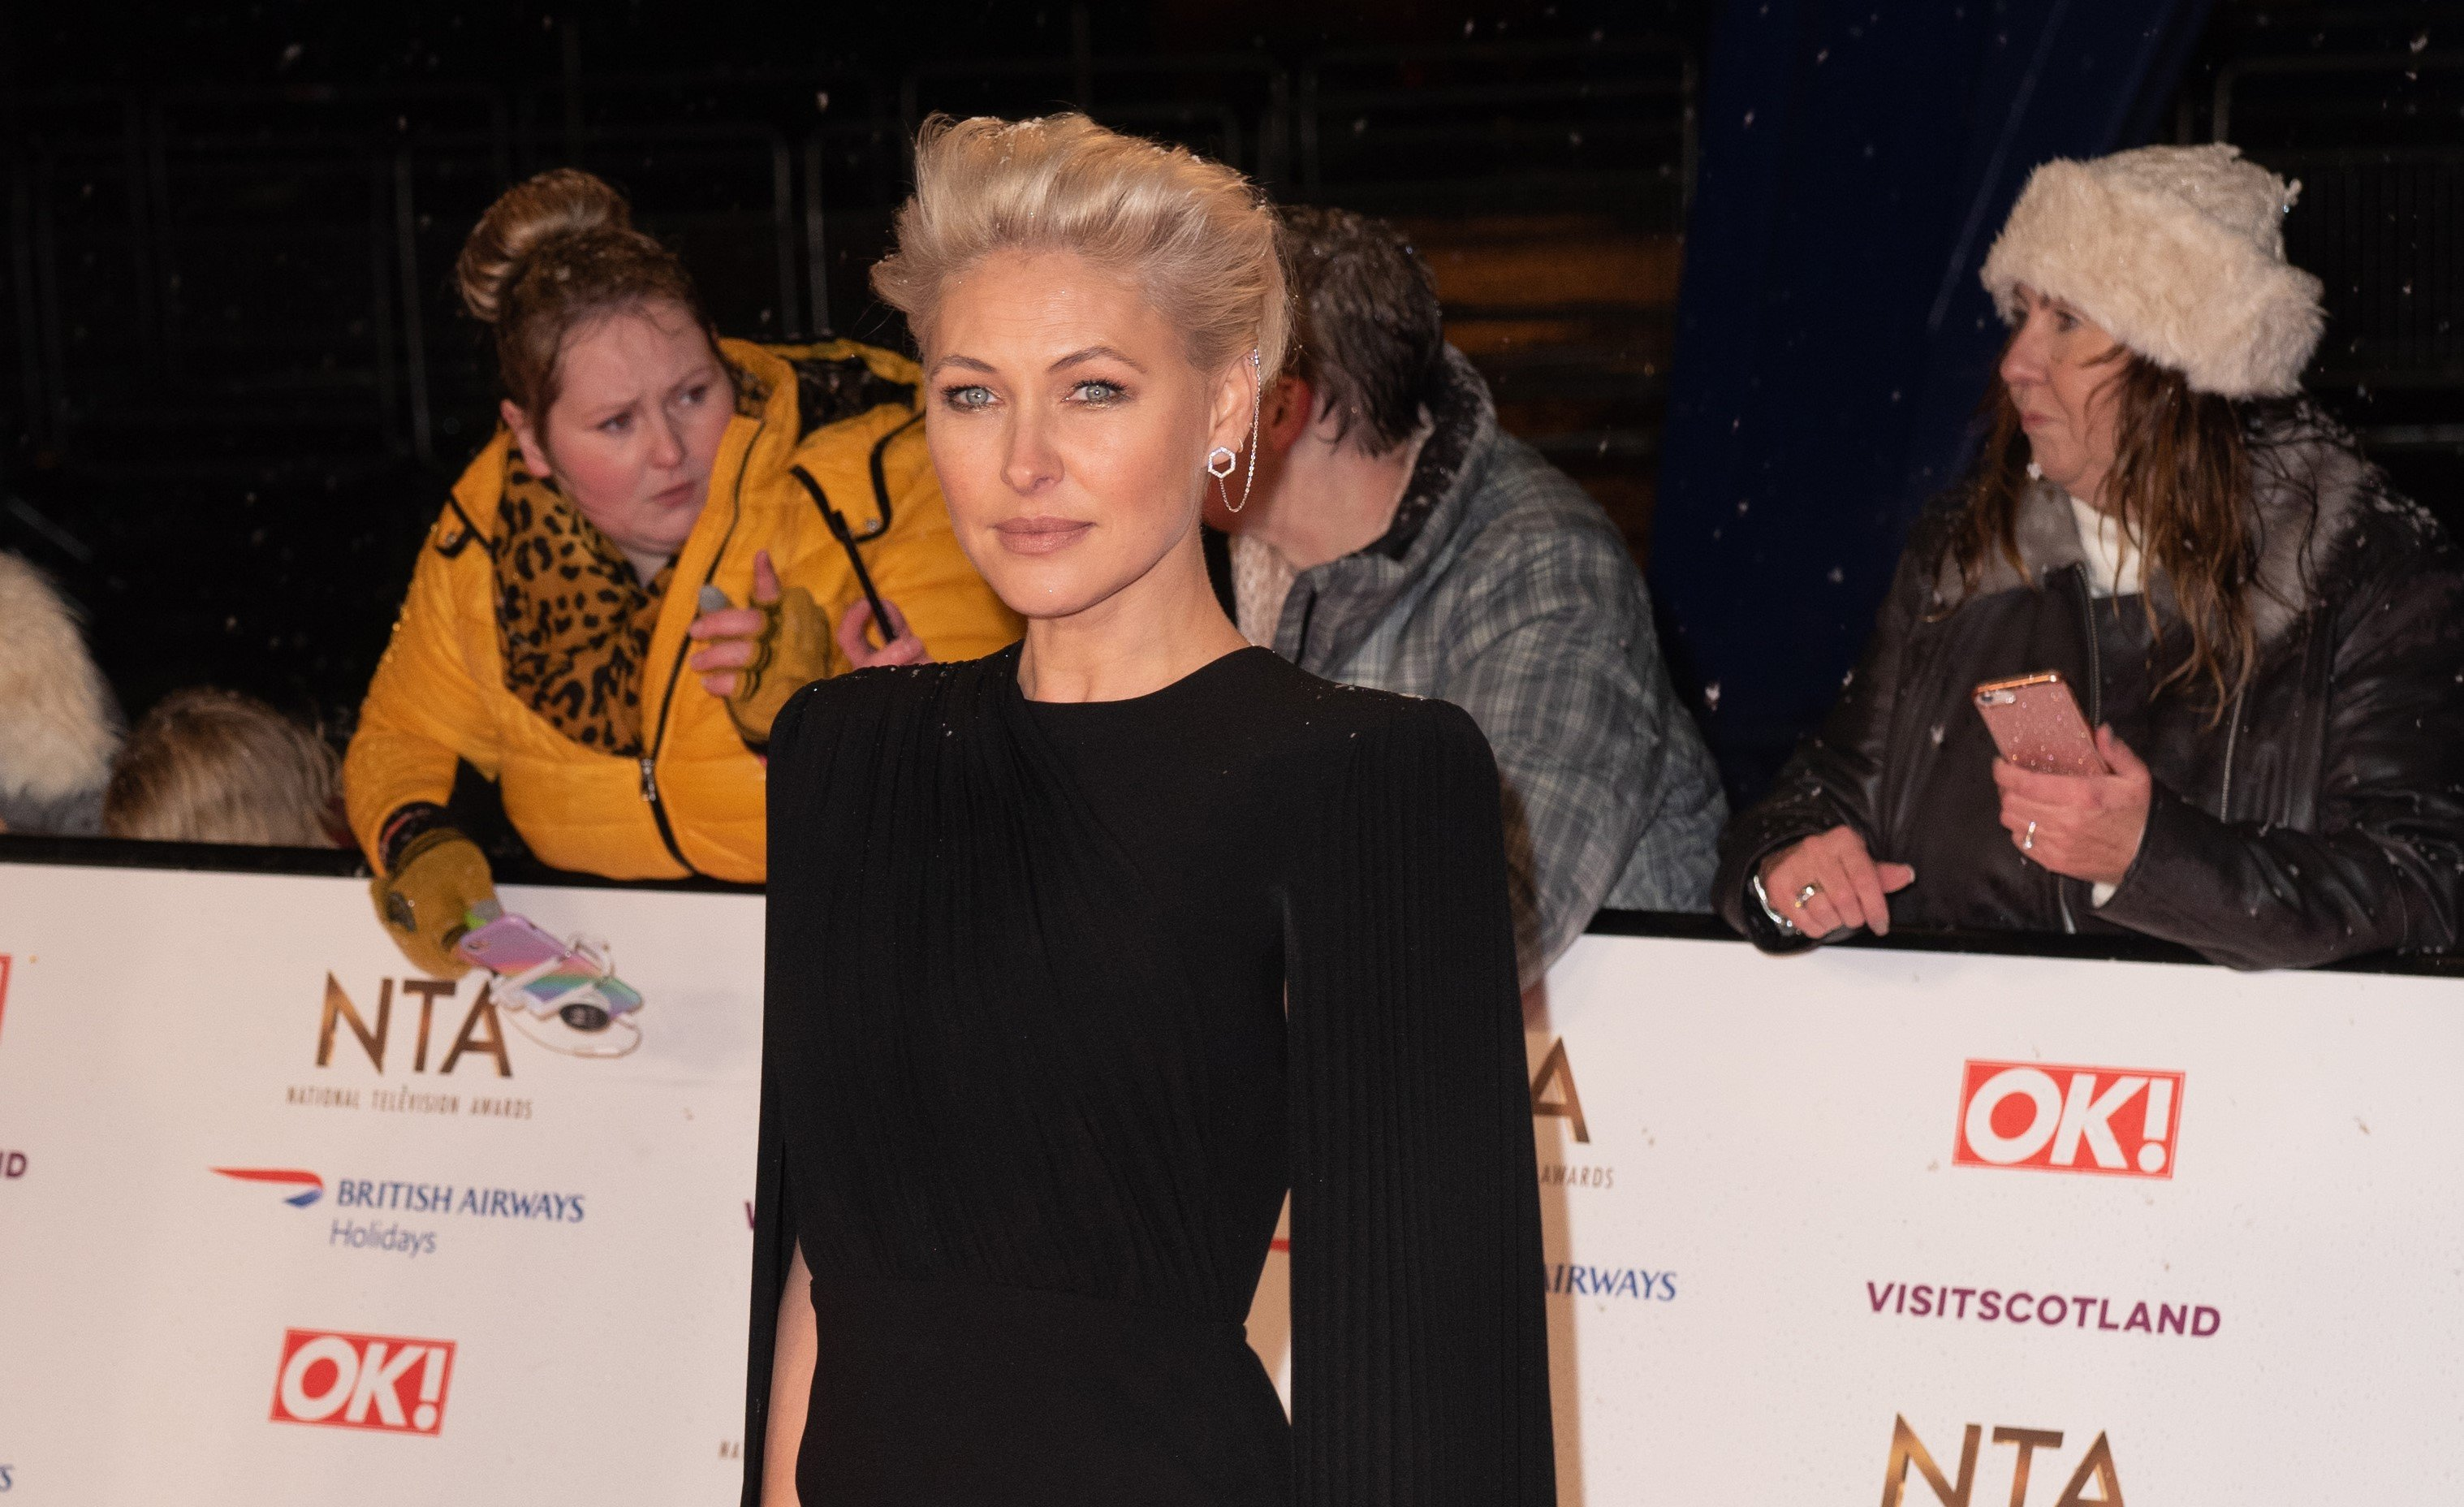 Emma Willis confesses she stole from the Big Brother house